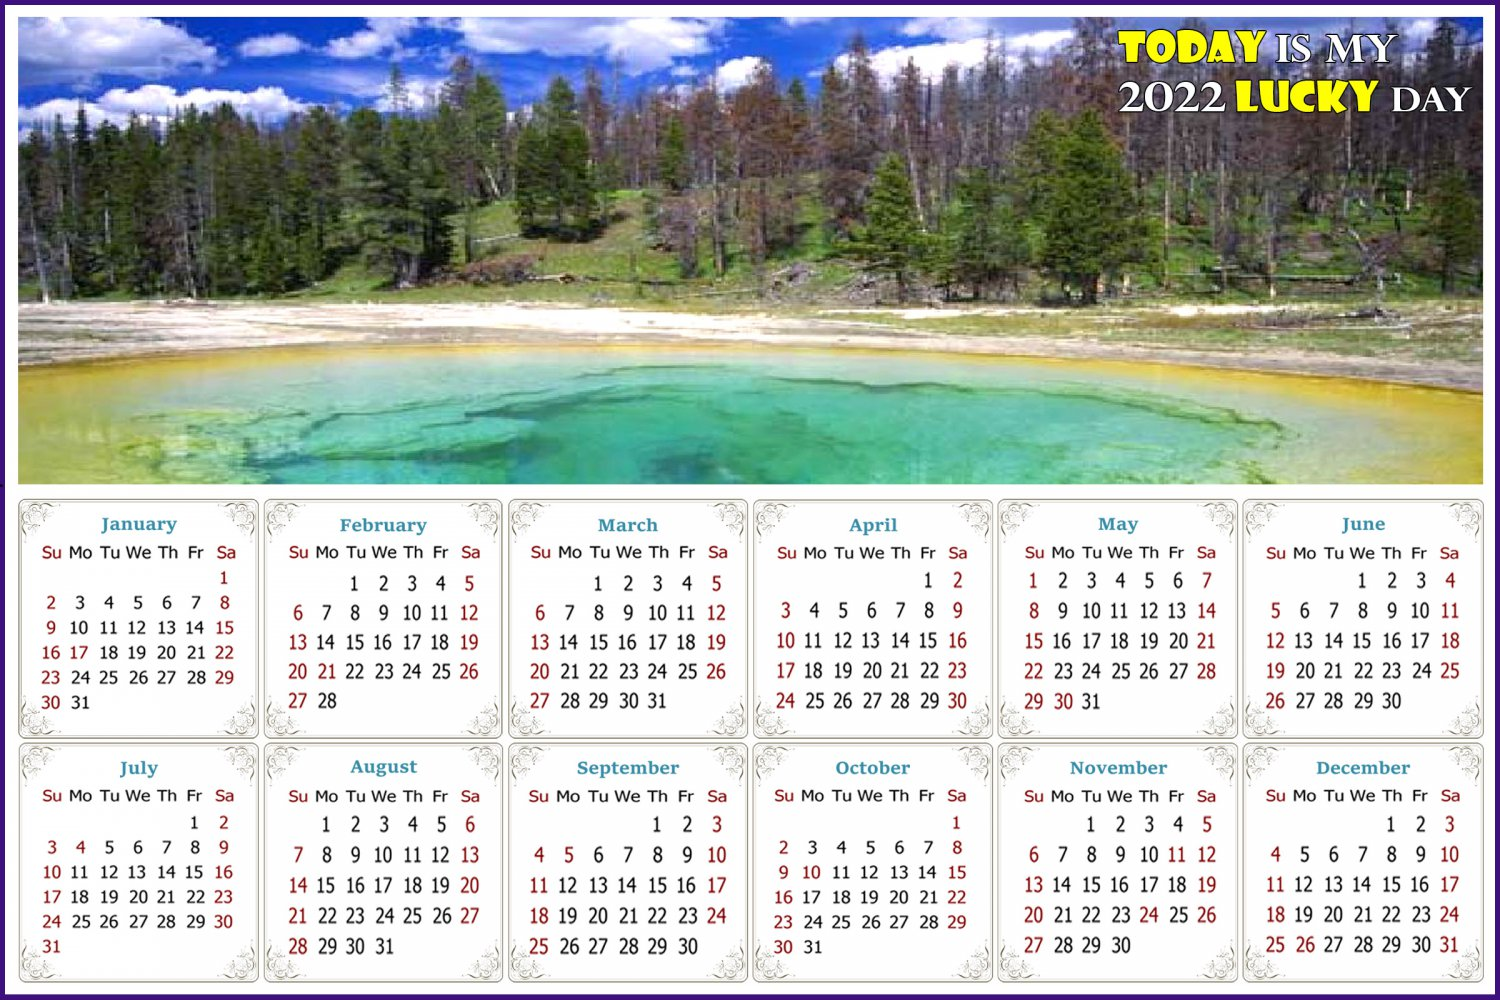 2022 Magnetic Calendar - Calendar Magnets - Today is my Lucky Day - Edition #29